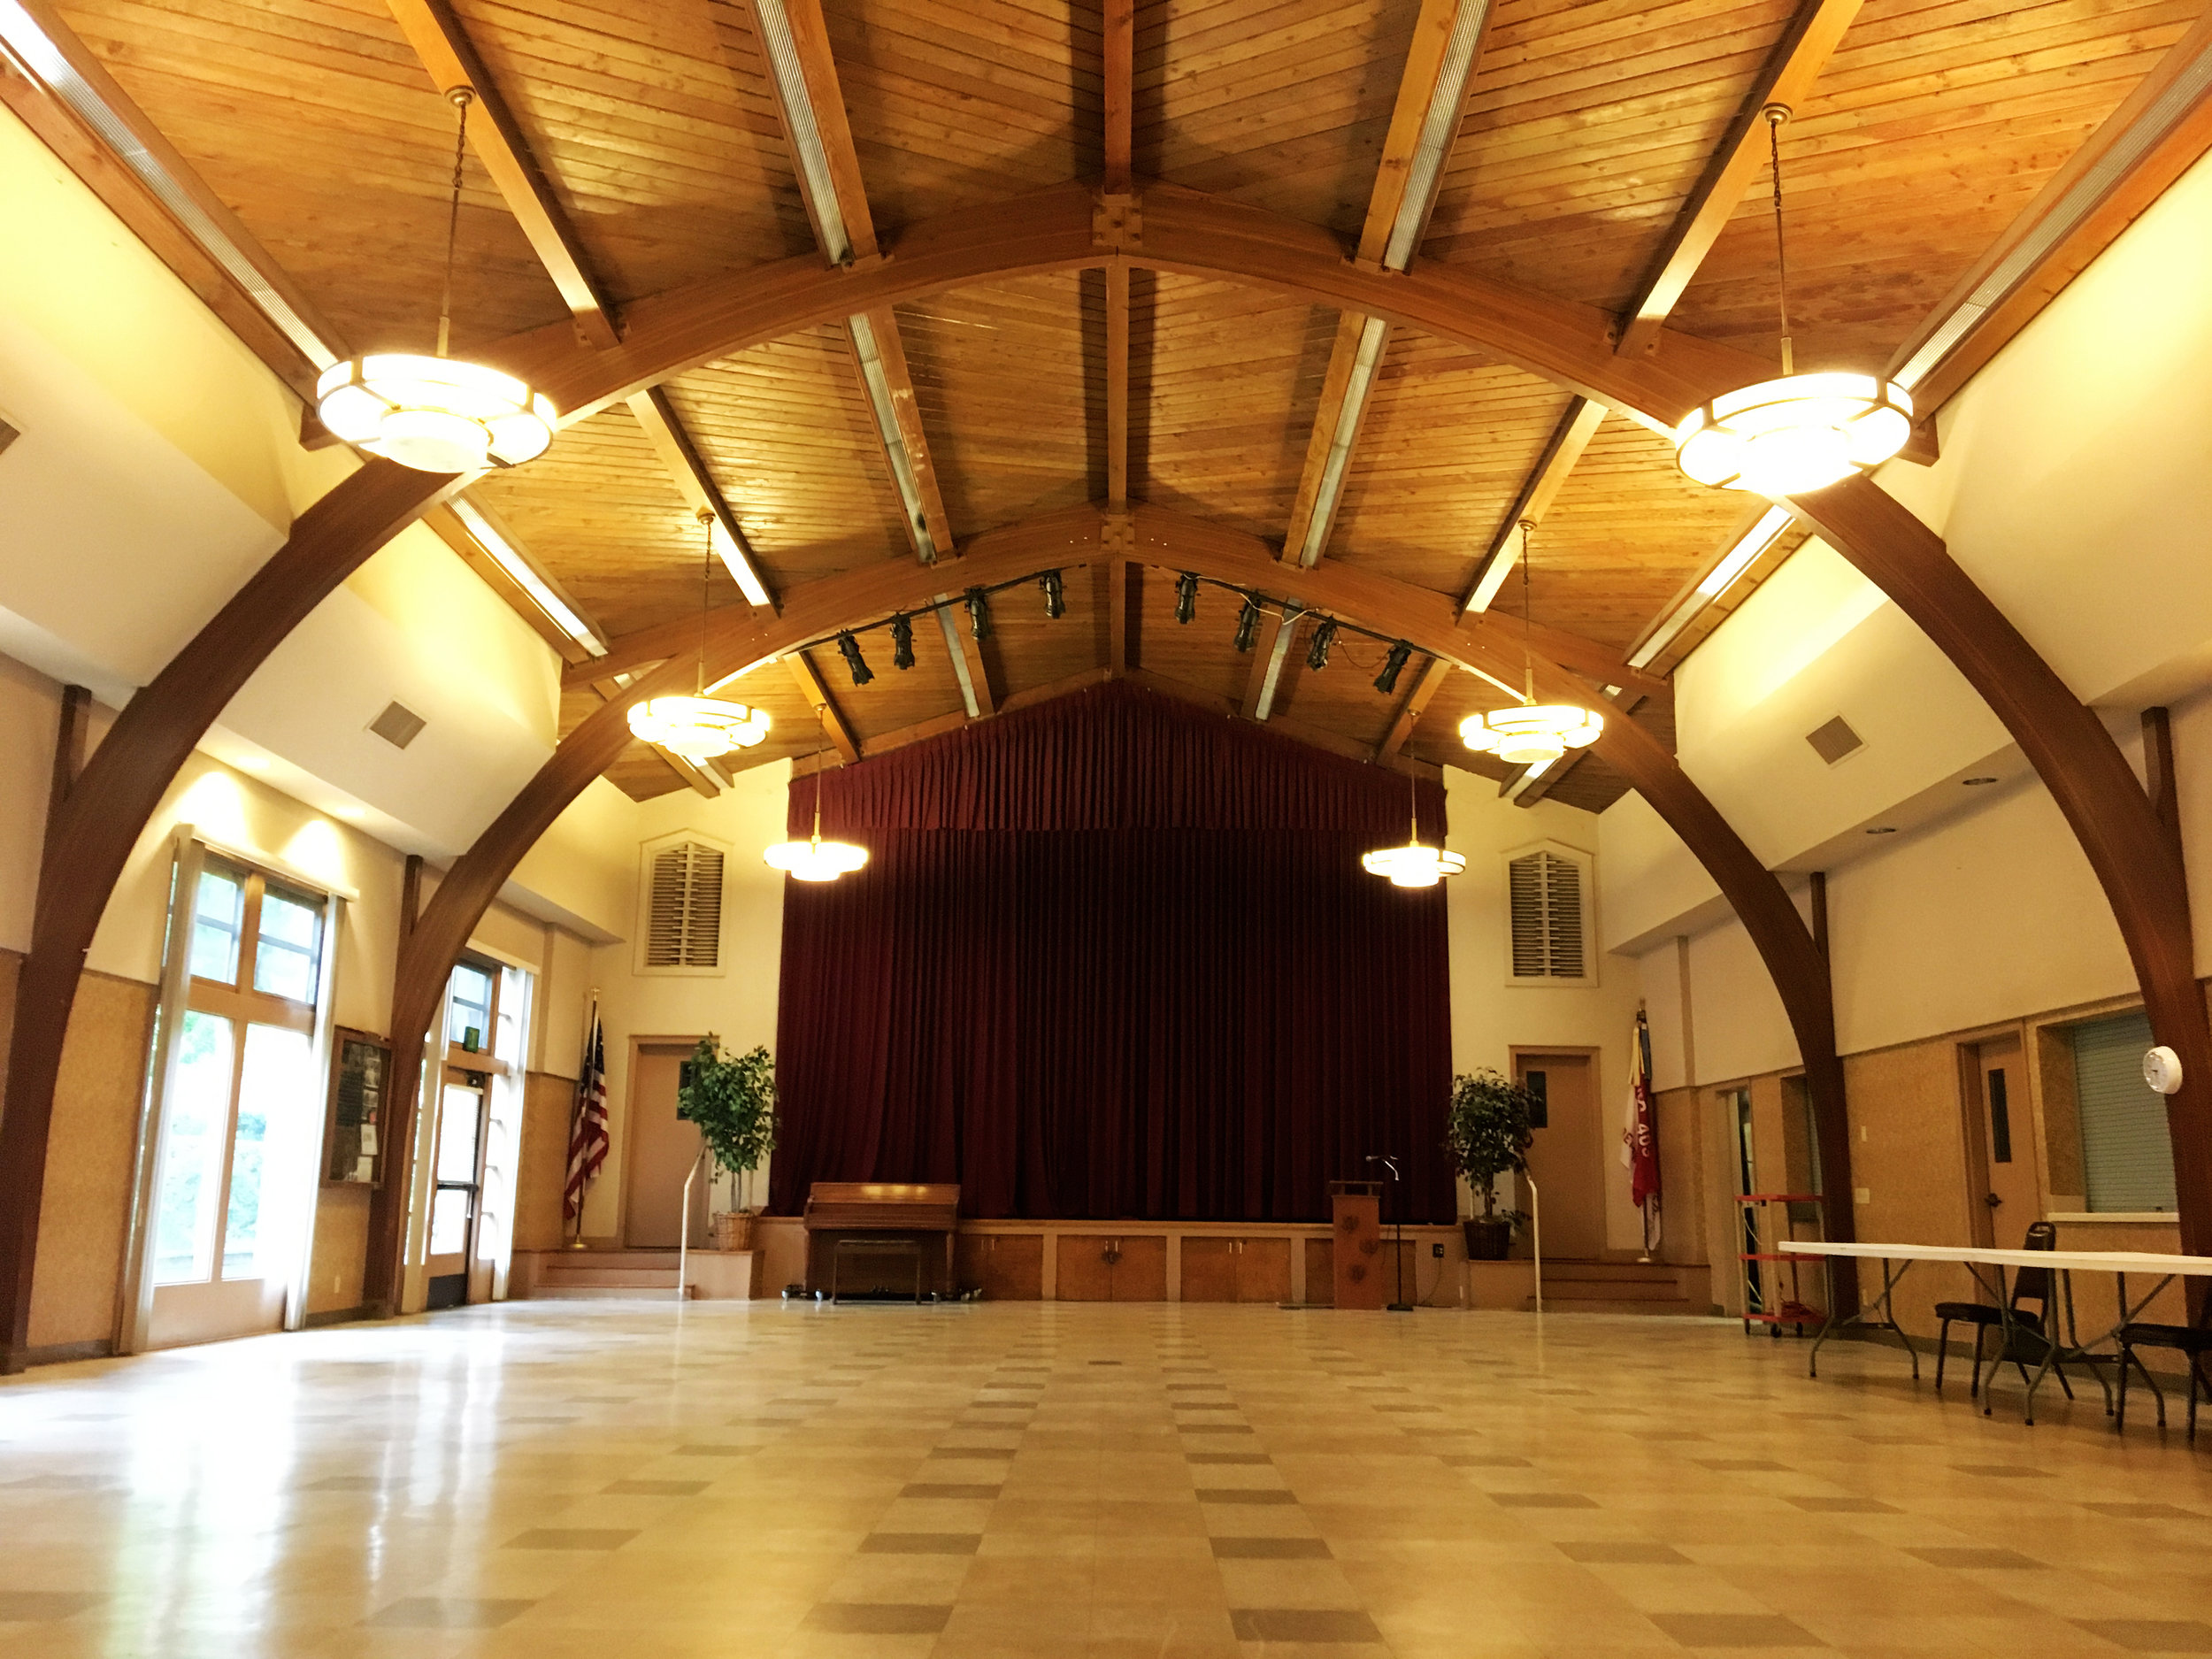 claremont-presbyterian-church-campus-tour-fellowship-hall-2.jpg